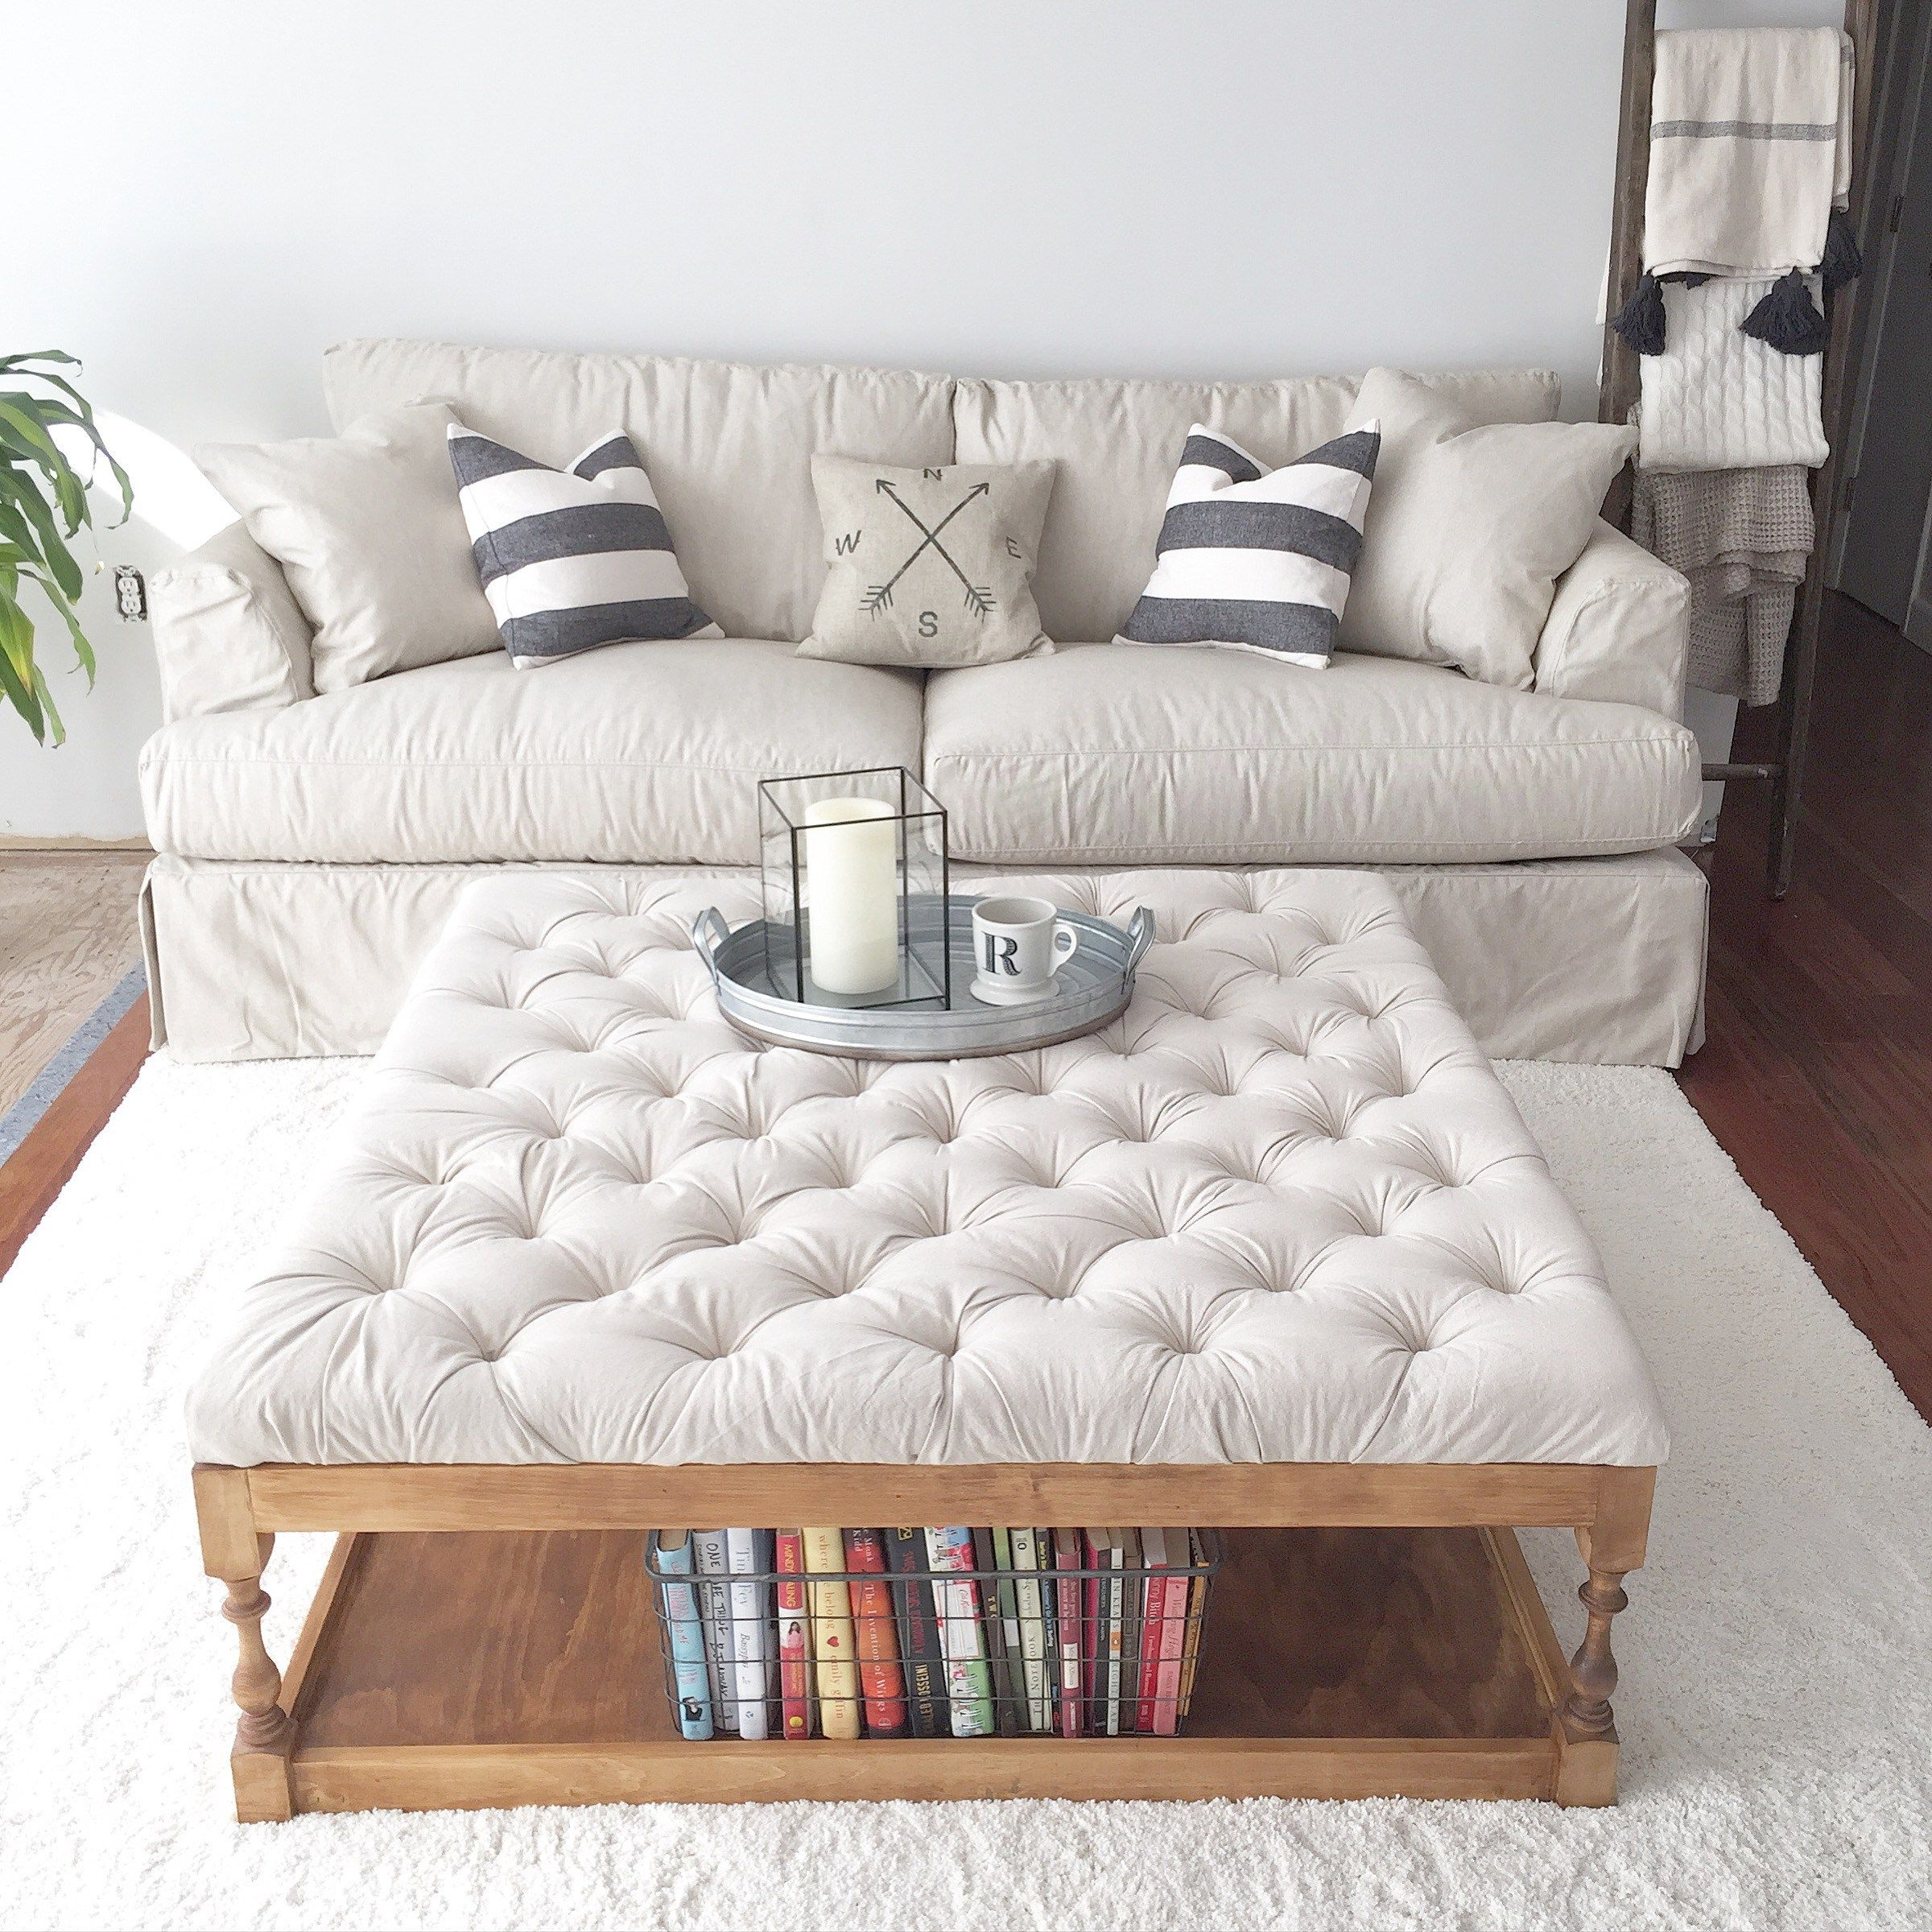 30 Pretty Image of Diy Furniture Living Room | Tufted ...